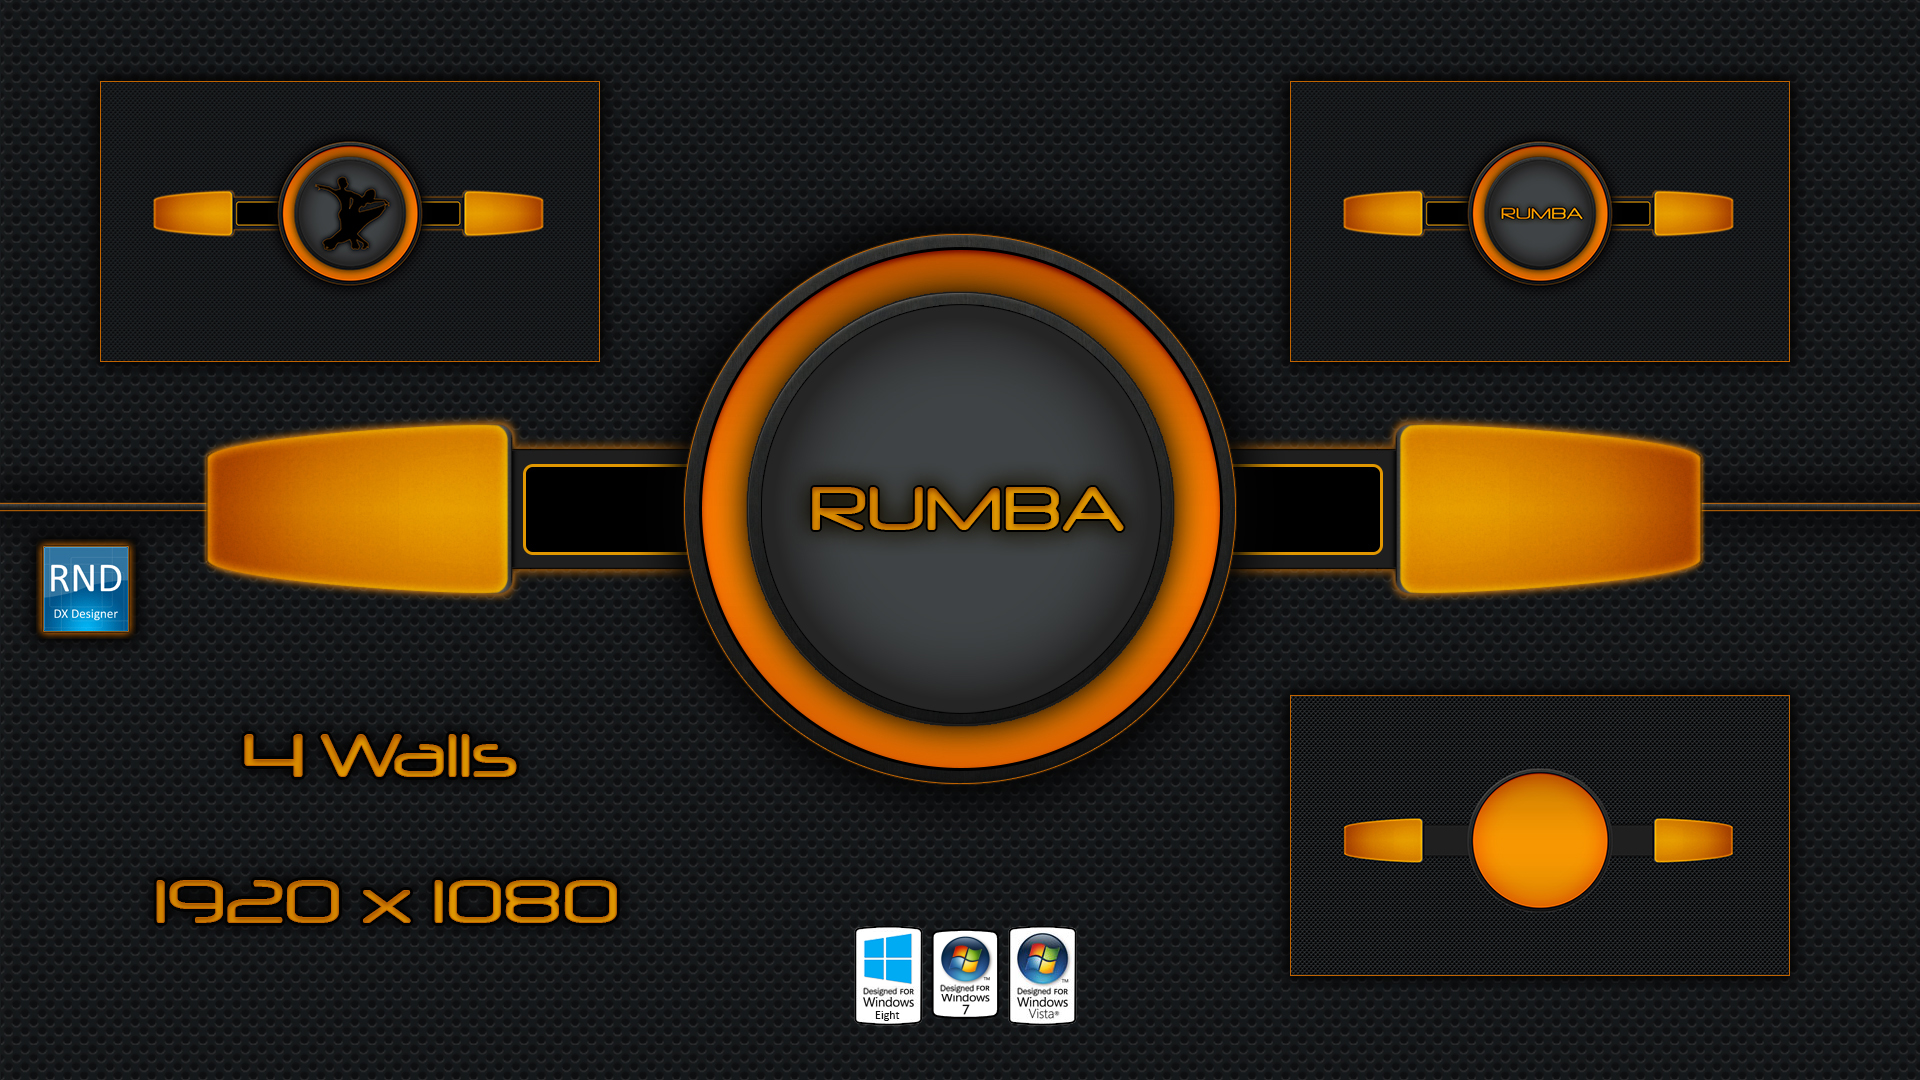 Rumba Wallz